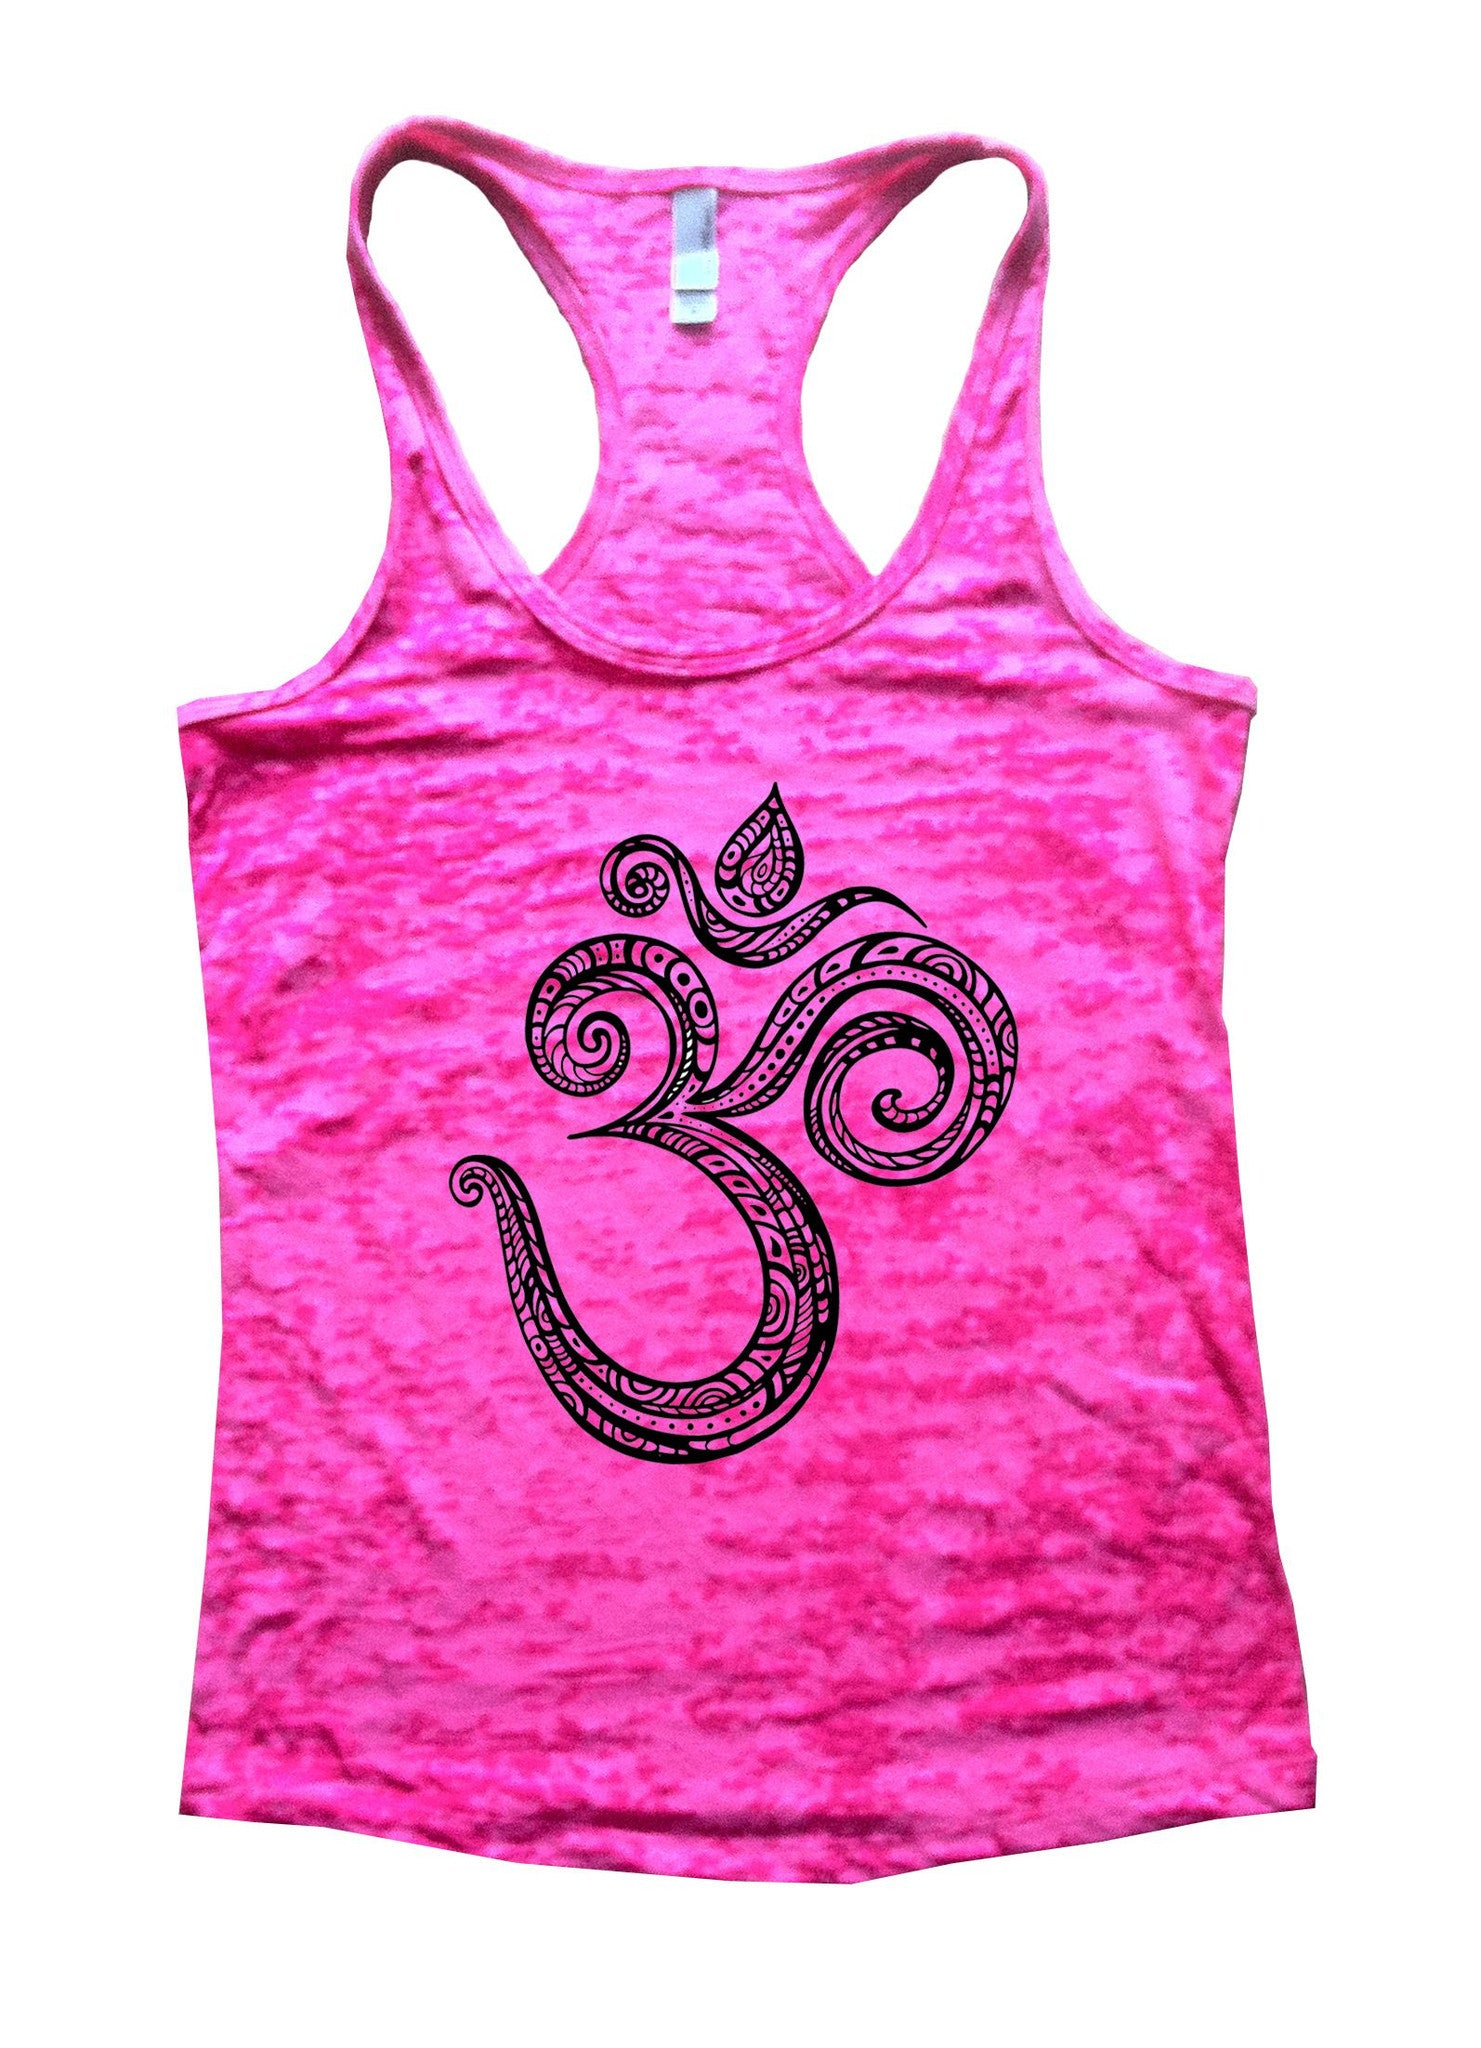 Ohm Burnout Tank Top By BurnoutTankTops.com - 908 - Funny Shirts Tank Tops Burnouts and Triblends  - 4